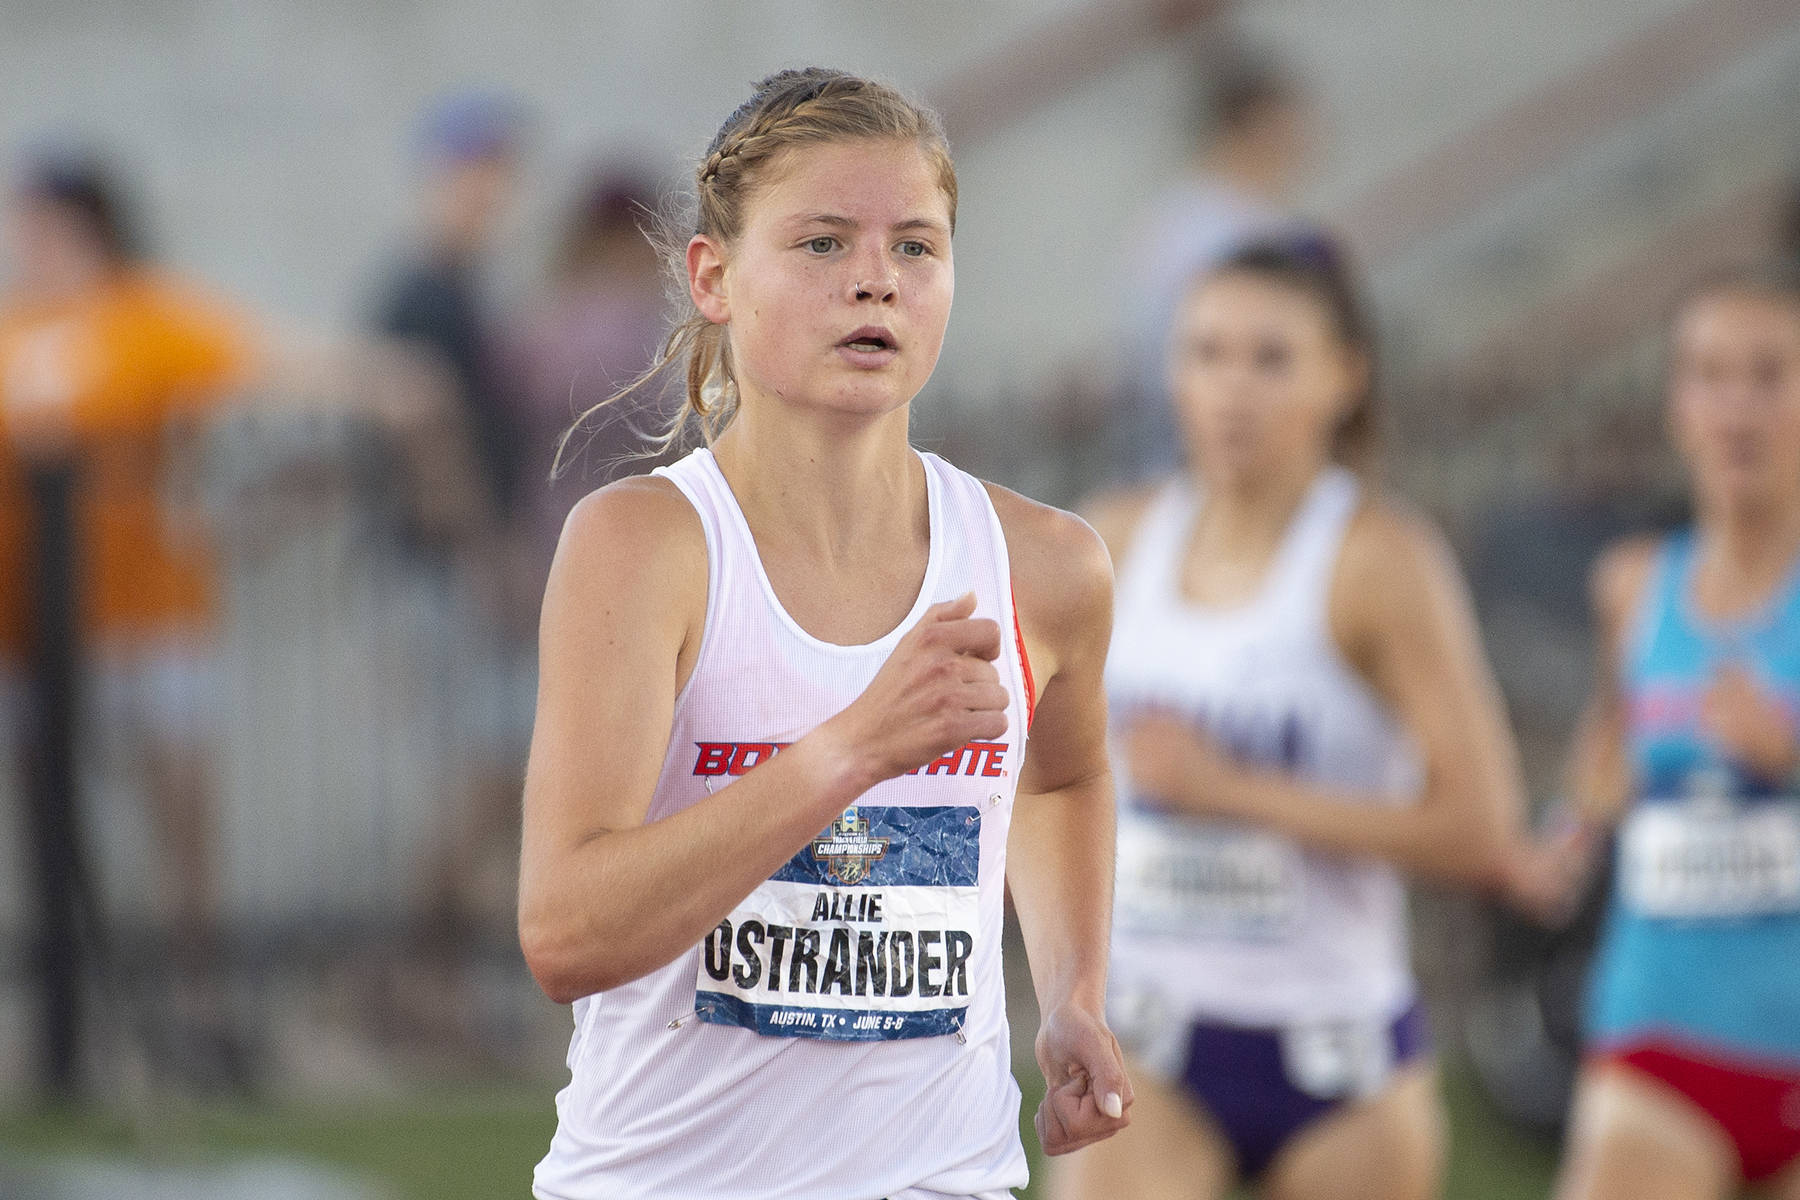 Ostrander ready to take on world at Qatar championships